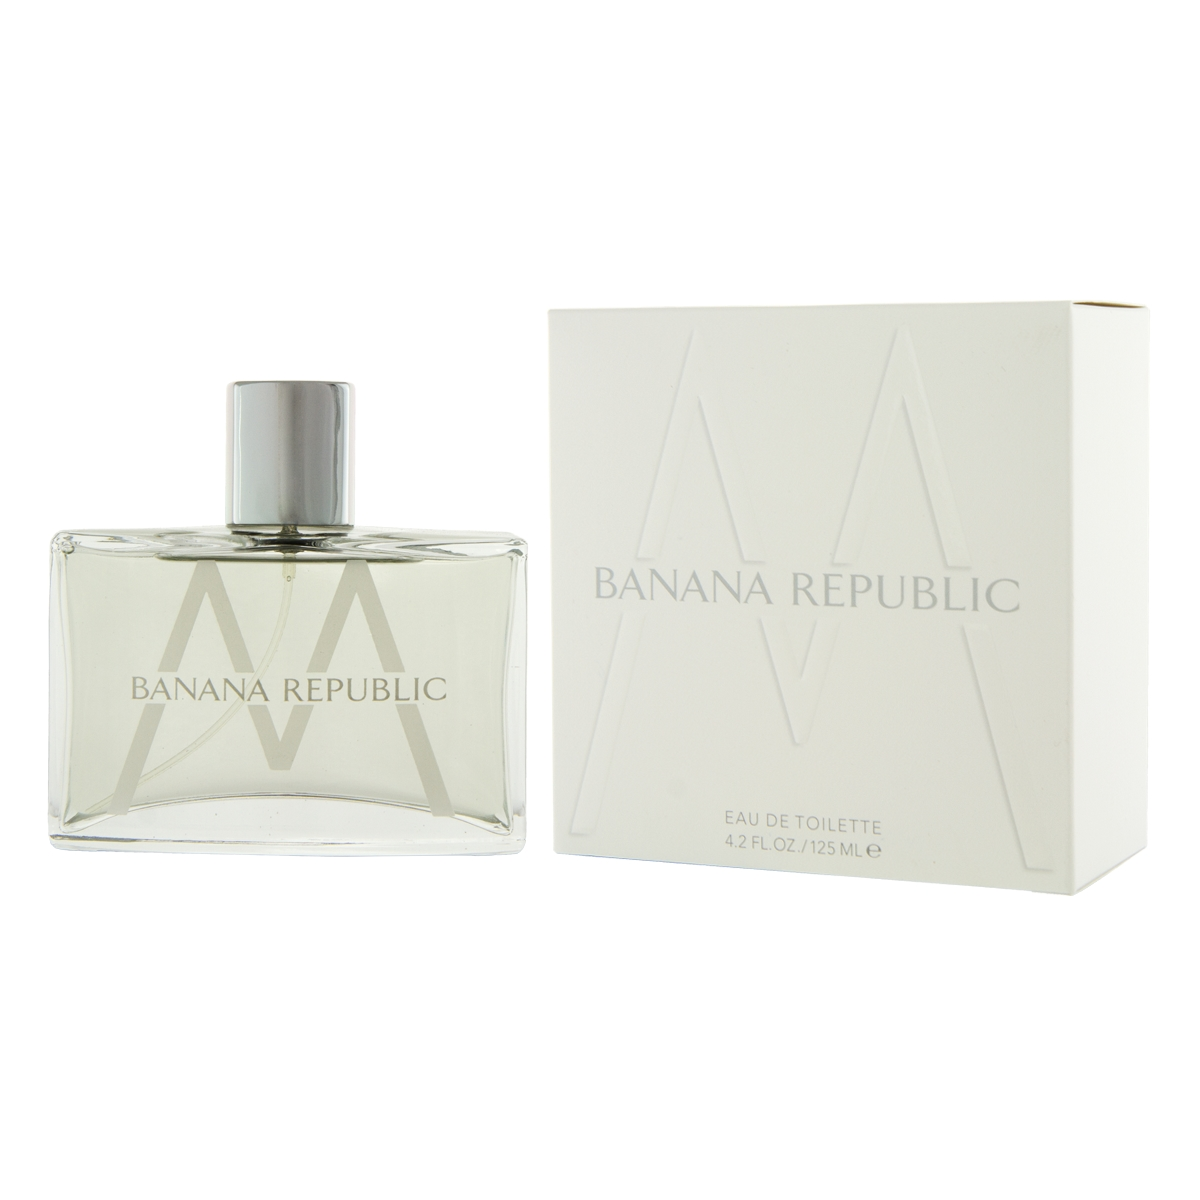 Banana Republic Banana Republic M Eau De Toilette 125 ml (man) 74240